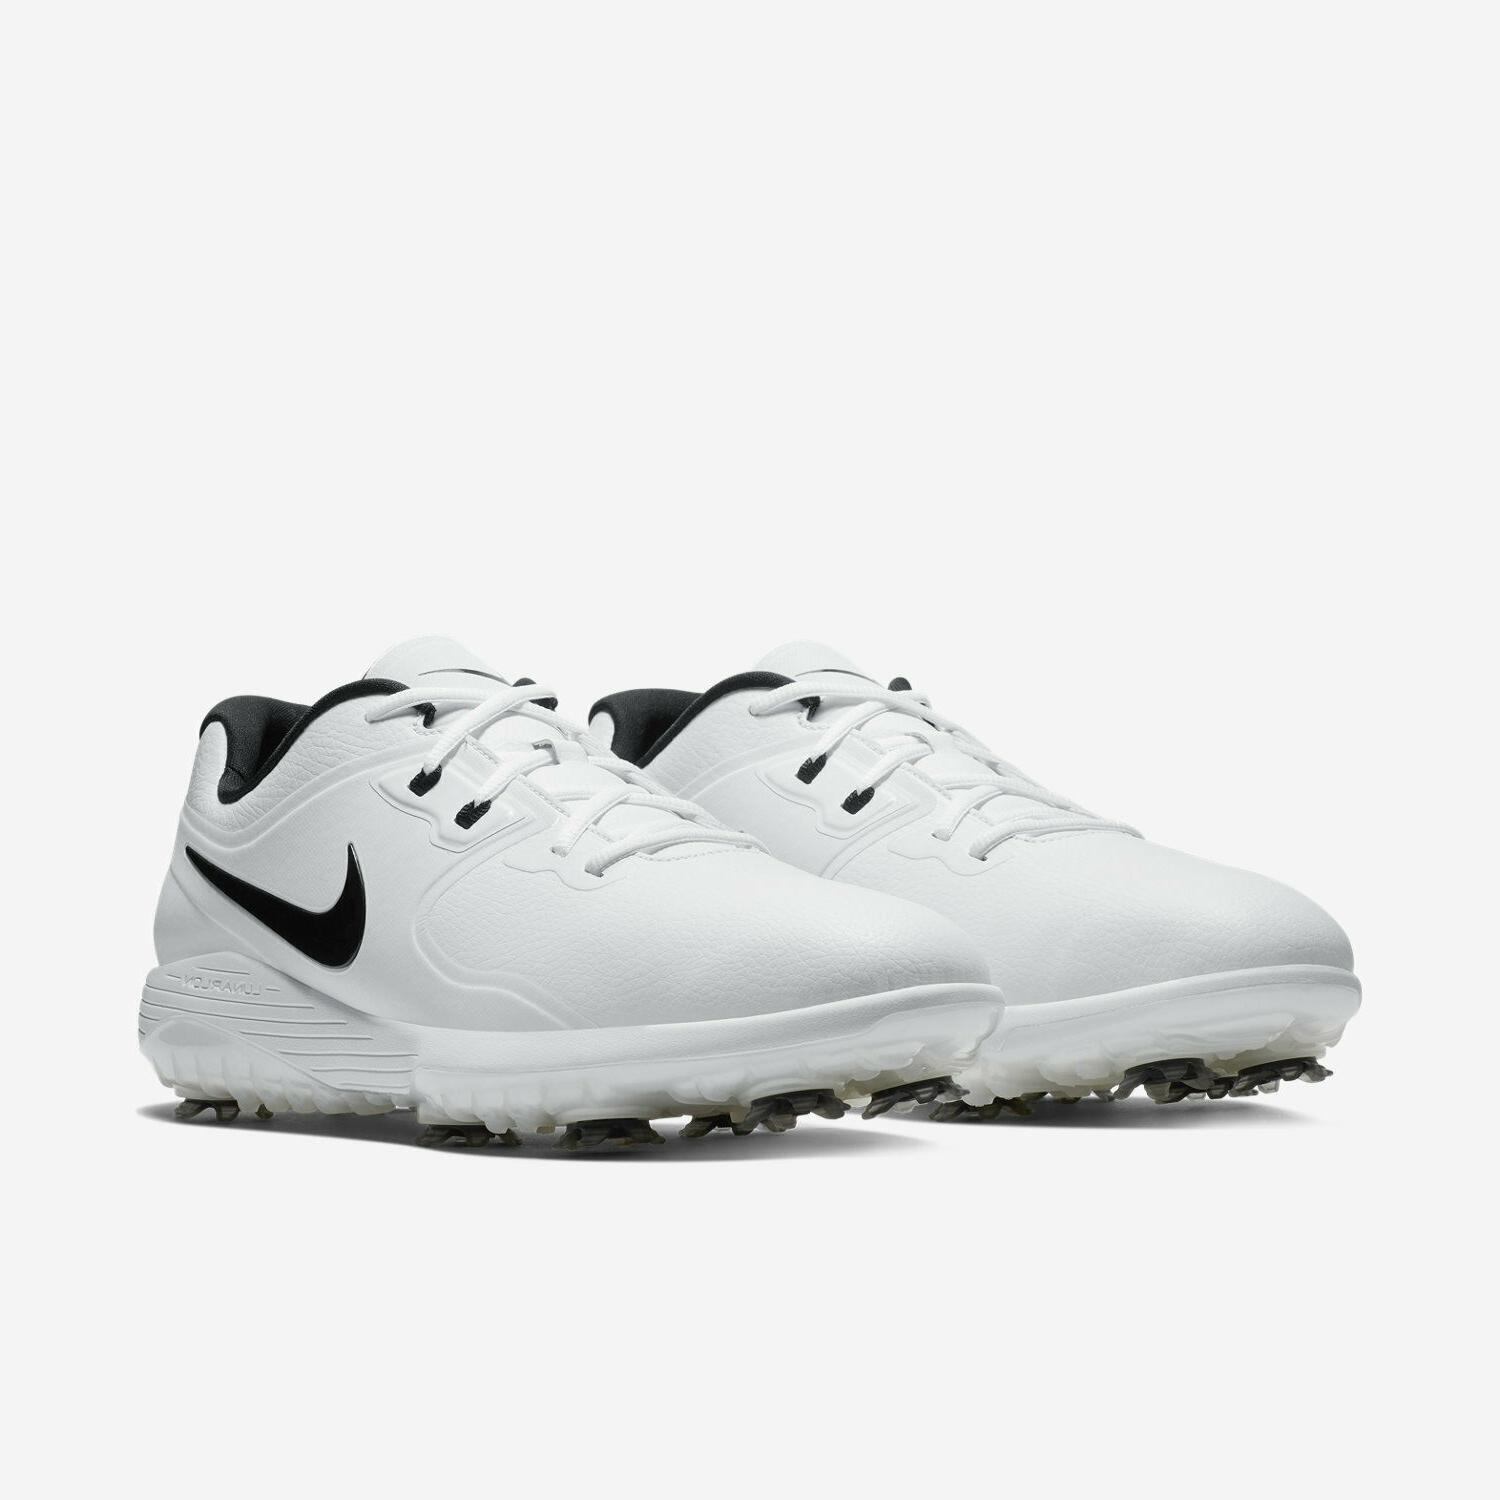 Nike Vapor Shoes Size White Lunarlon